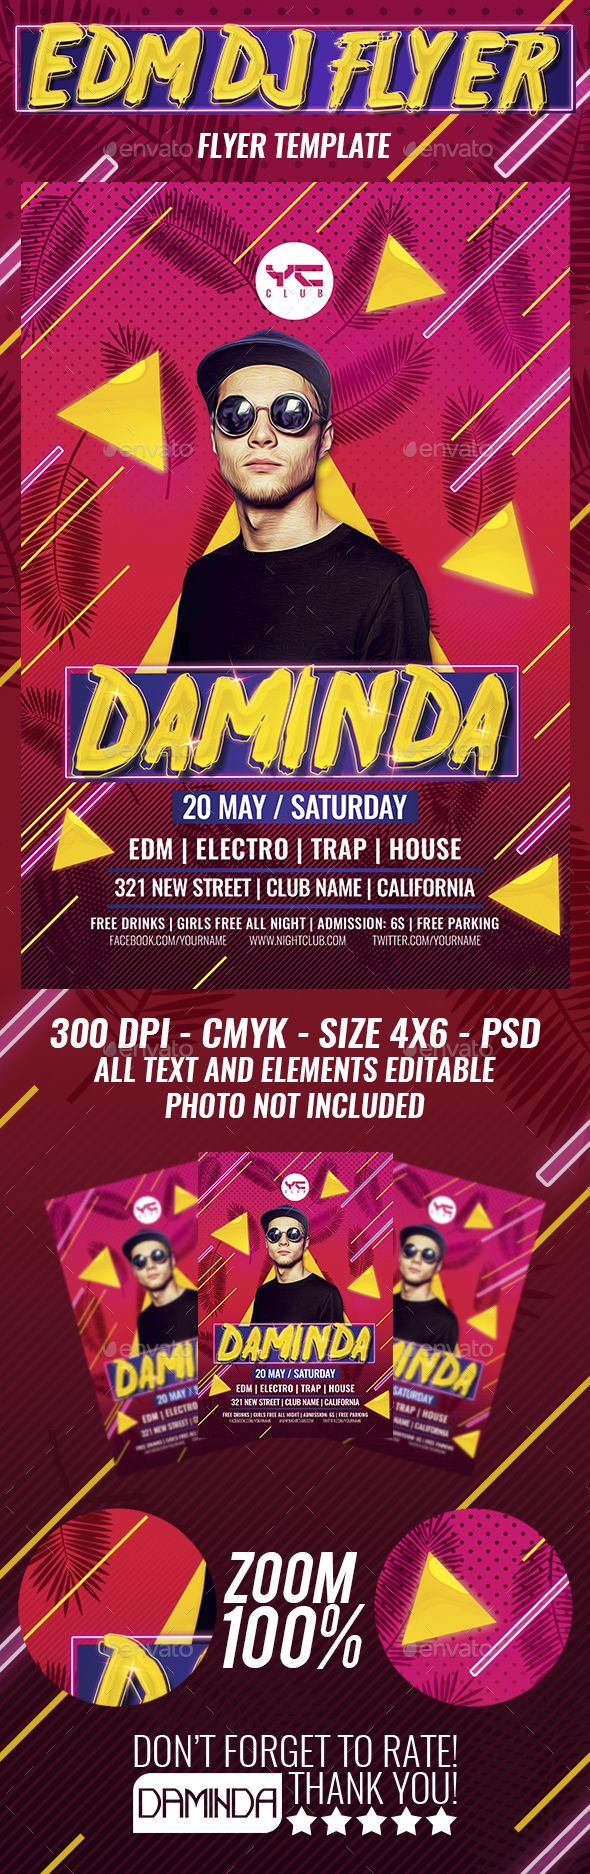 Electro Dj #Flyer #Template - Clubs & Parties #Events Download here: https://graphicriver.net/item/electro-dj-flyer-template/19524658?ref=alena994